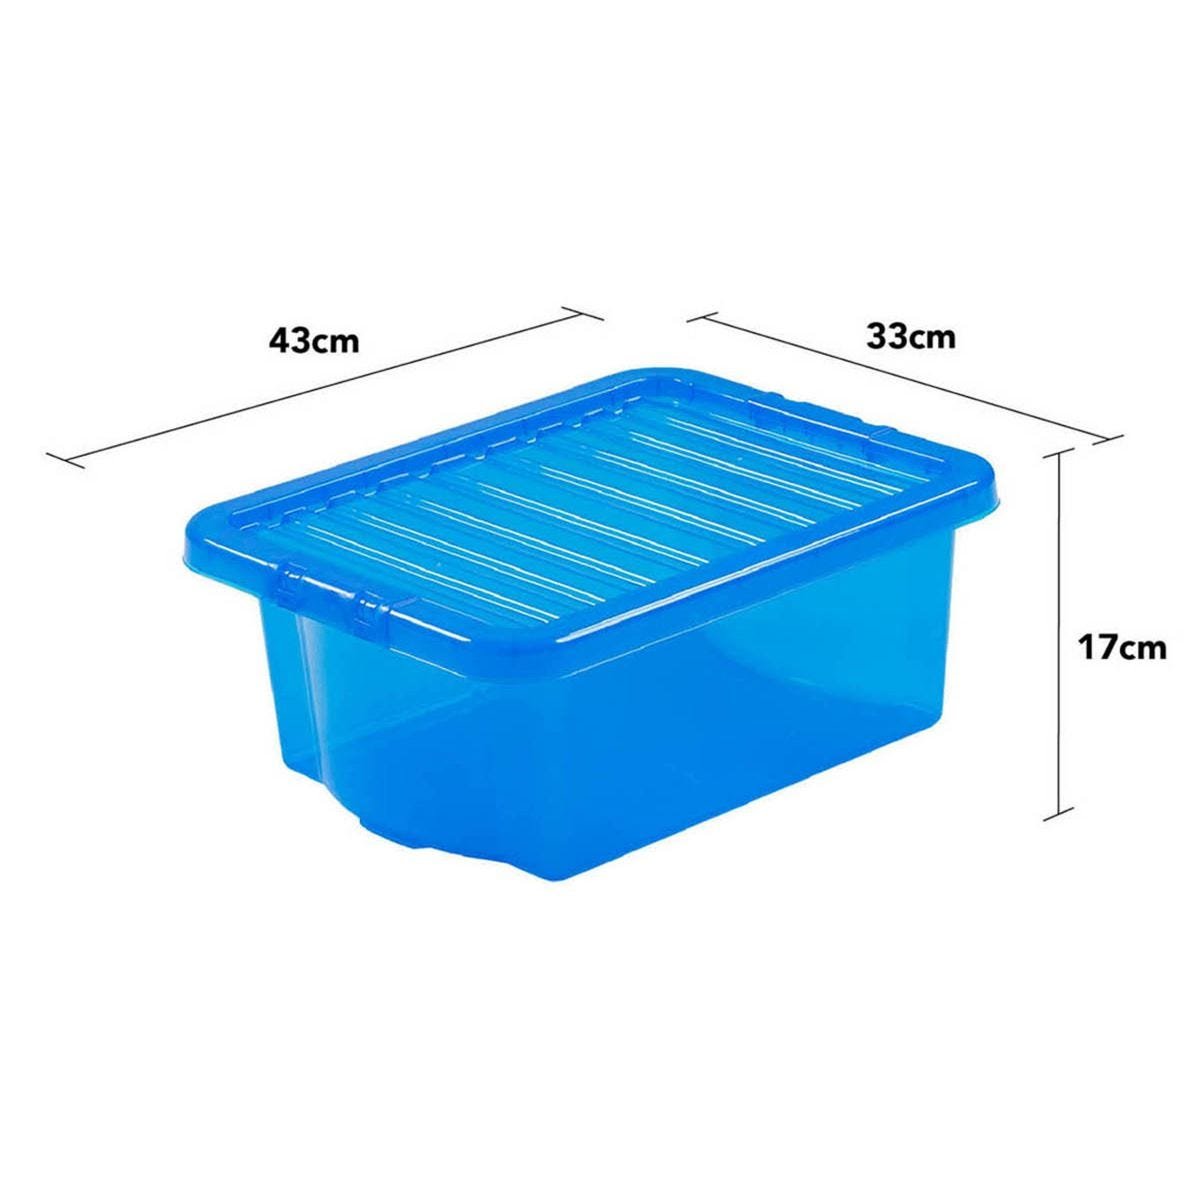 Wham Crystal Blue Storage Box with Lid 16L - Set of 6